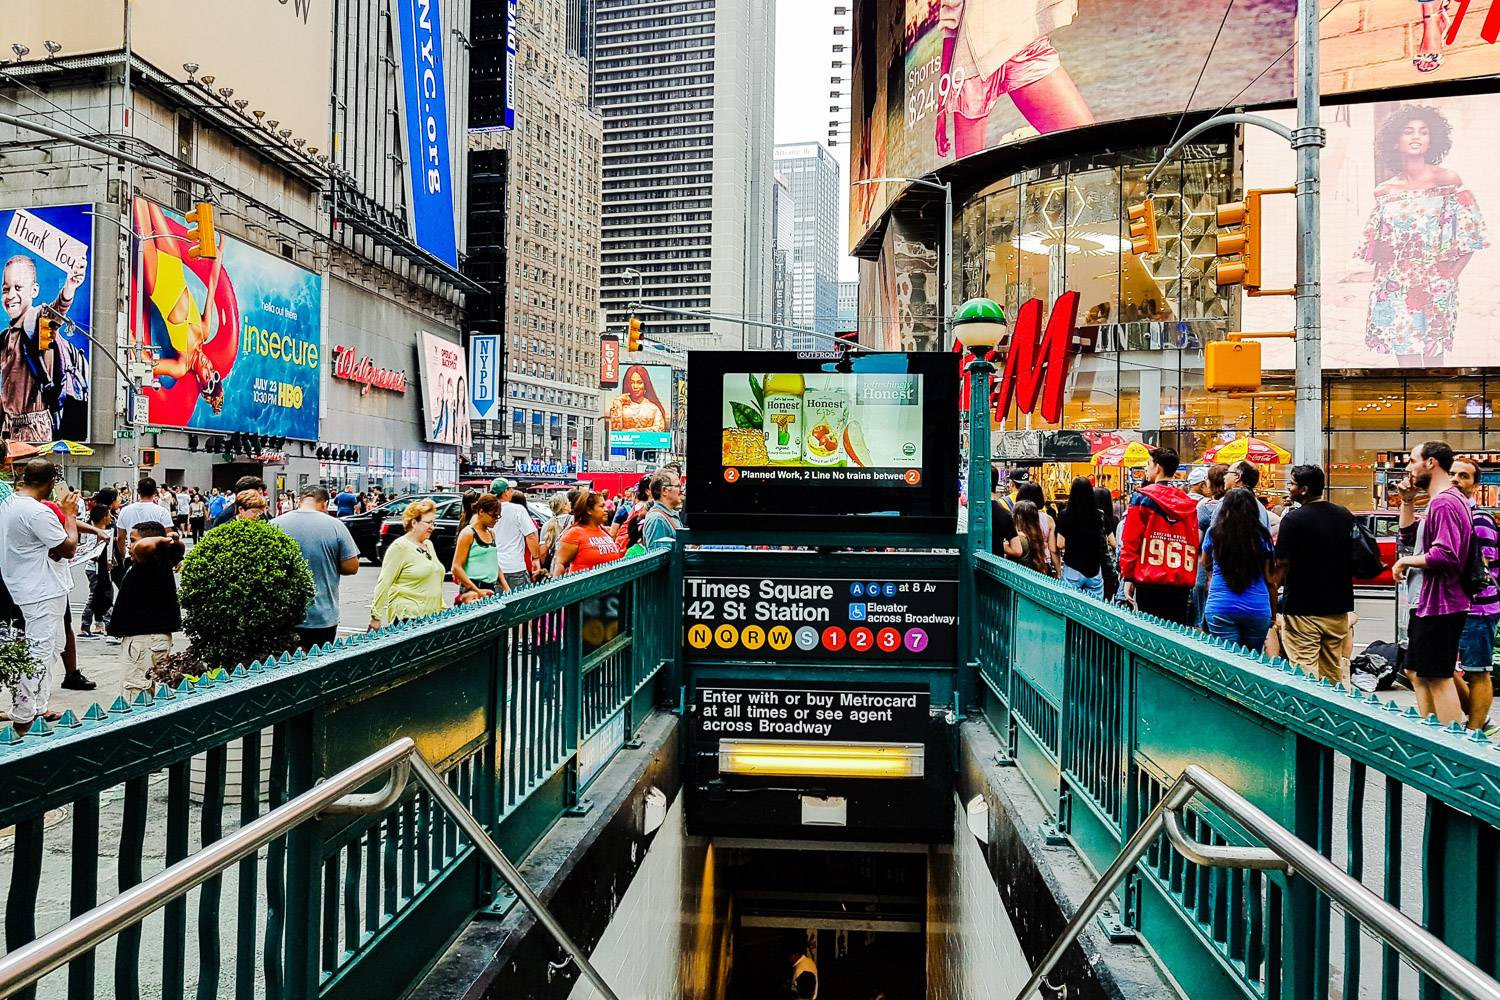 Foto des Eingangs zum Times Square - 42nd Street Station am Times Square, New York City.